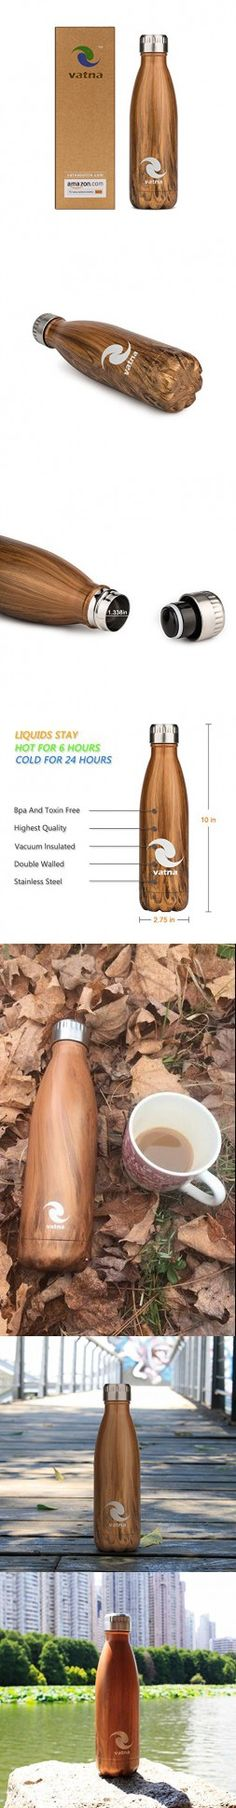 Vatna Insulated Bottle, Double Wall Vacuum insulation 18/8 Grade Stainless Steel Water Bottle, Cola Shape, Exquisite Packaging of A Vacuum Flask Bottle Wood Grain 17 oz /500 ml, BPA Free